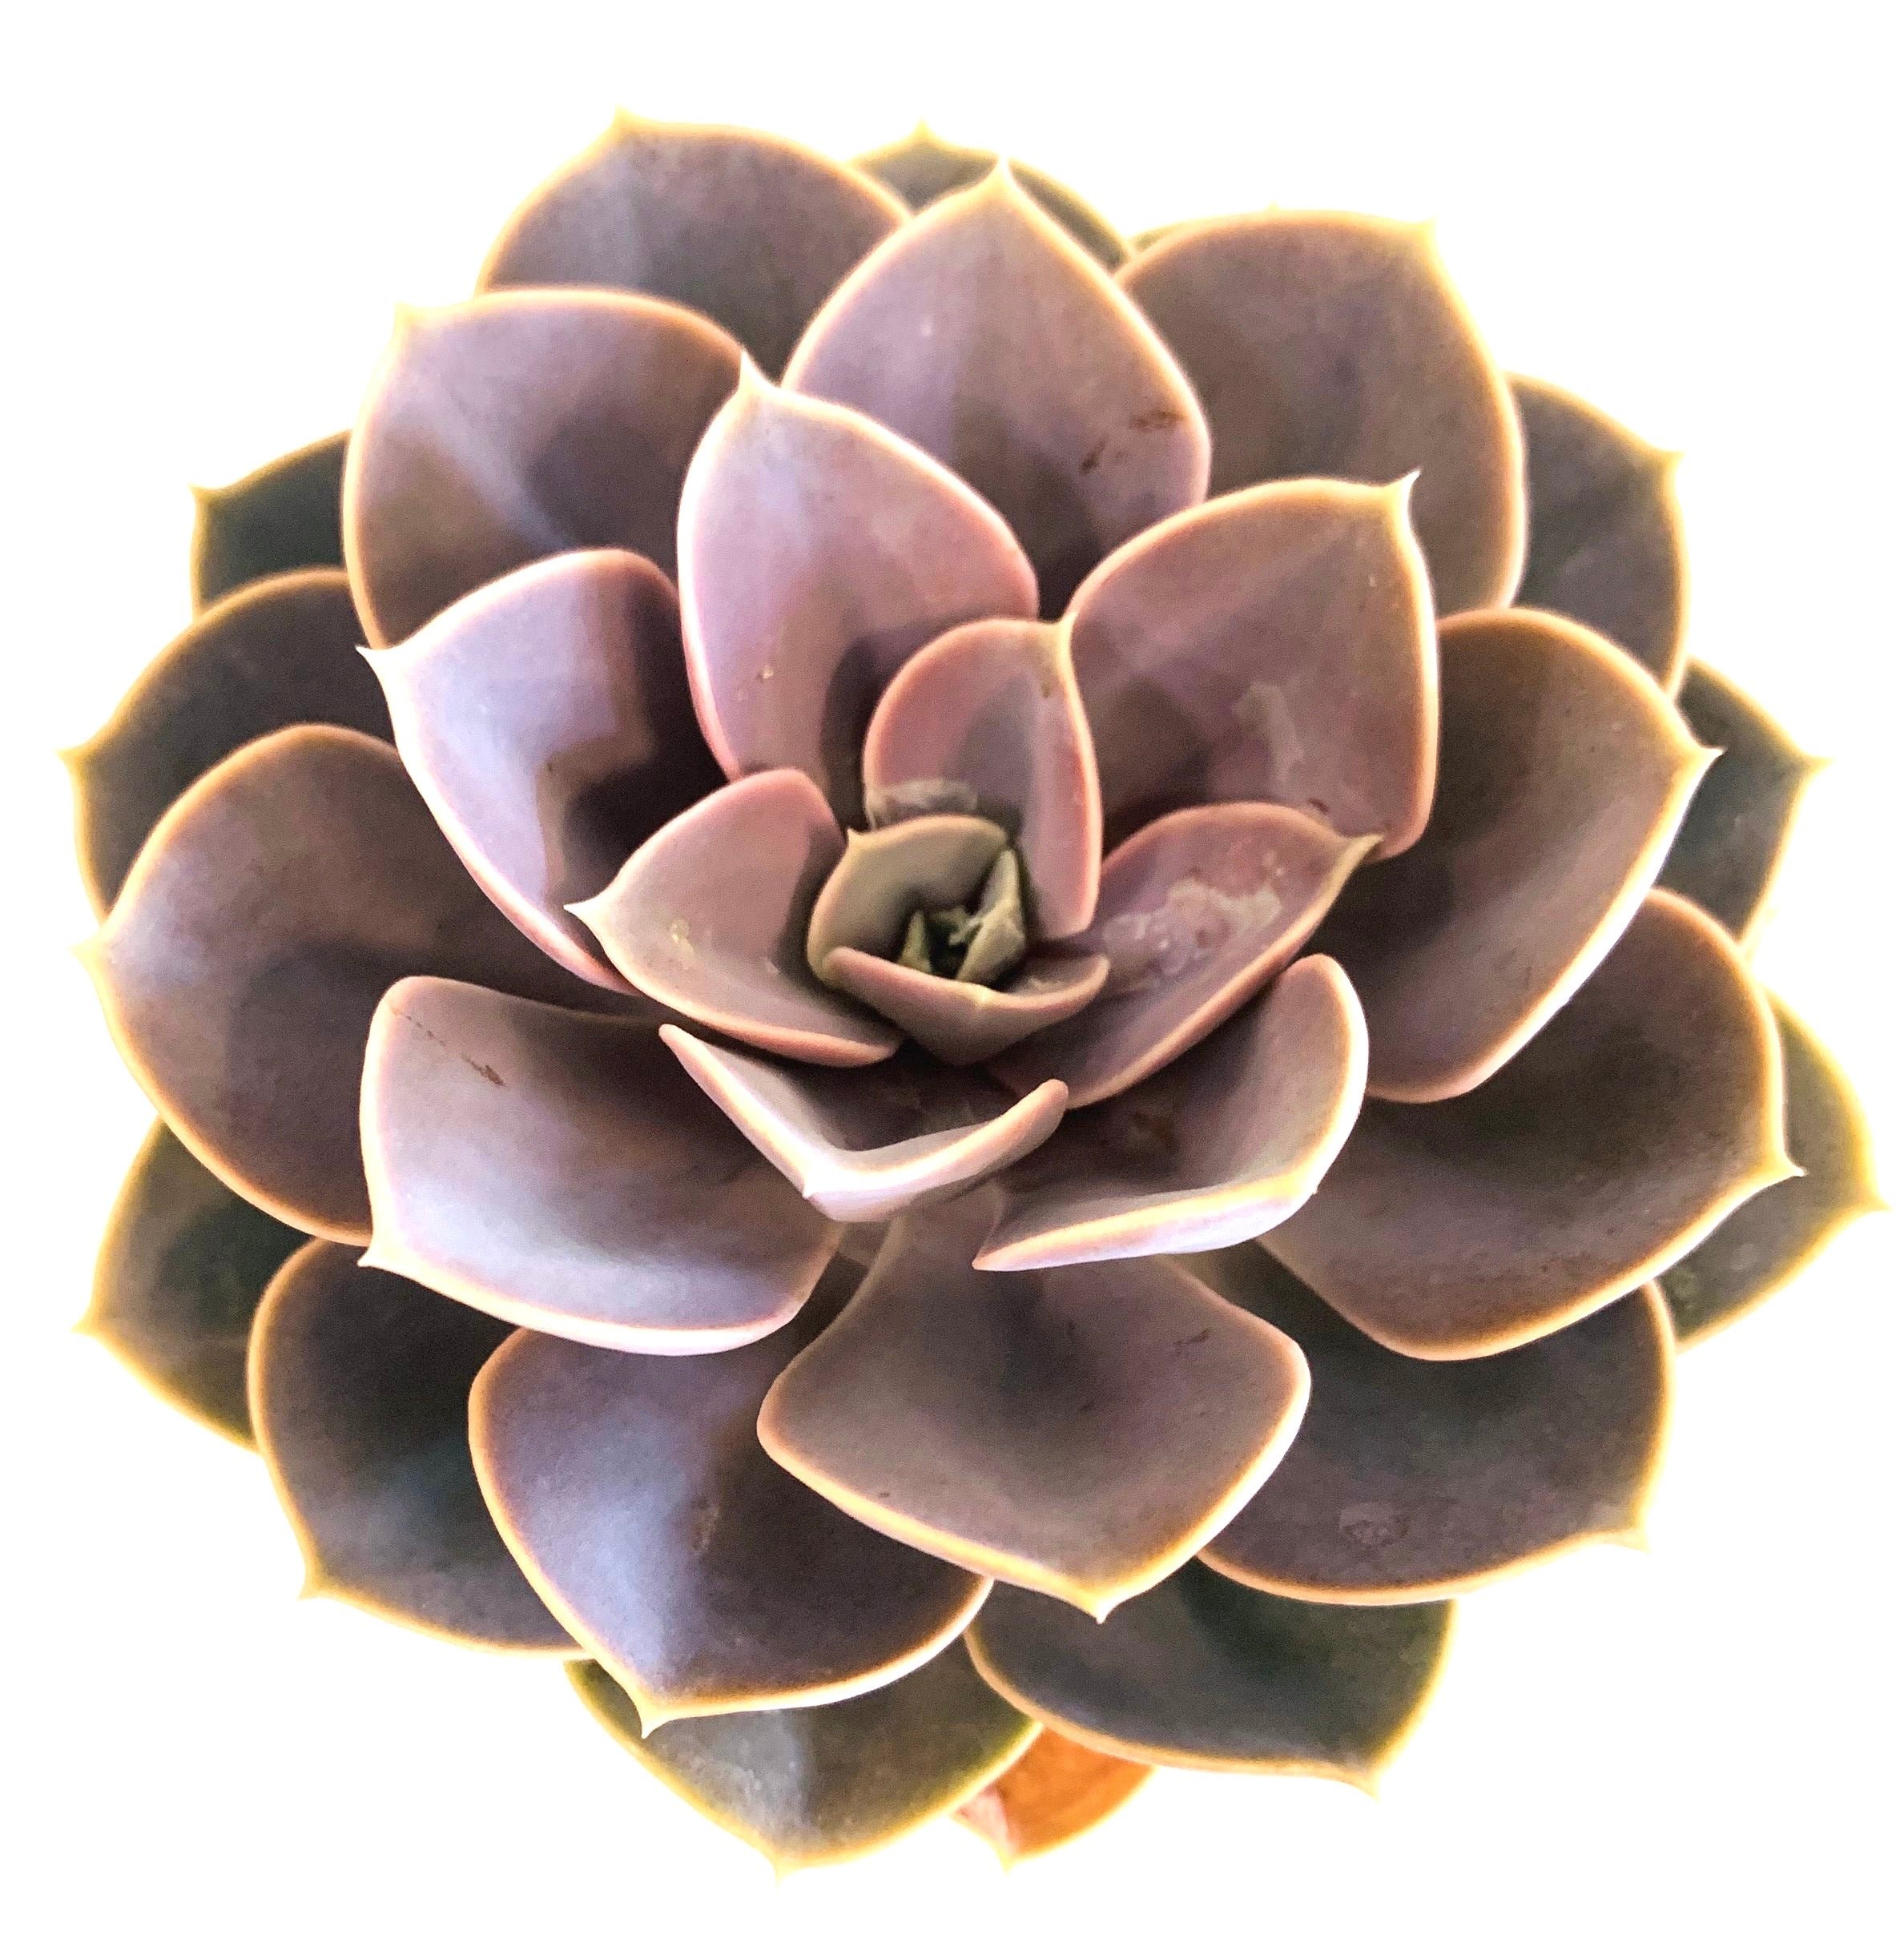 Echeveria Purple Perle V. Nurnberg - 4 Inch Pot